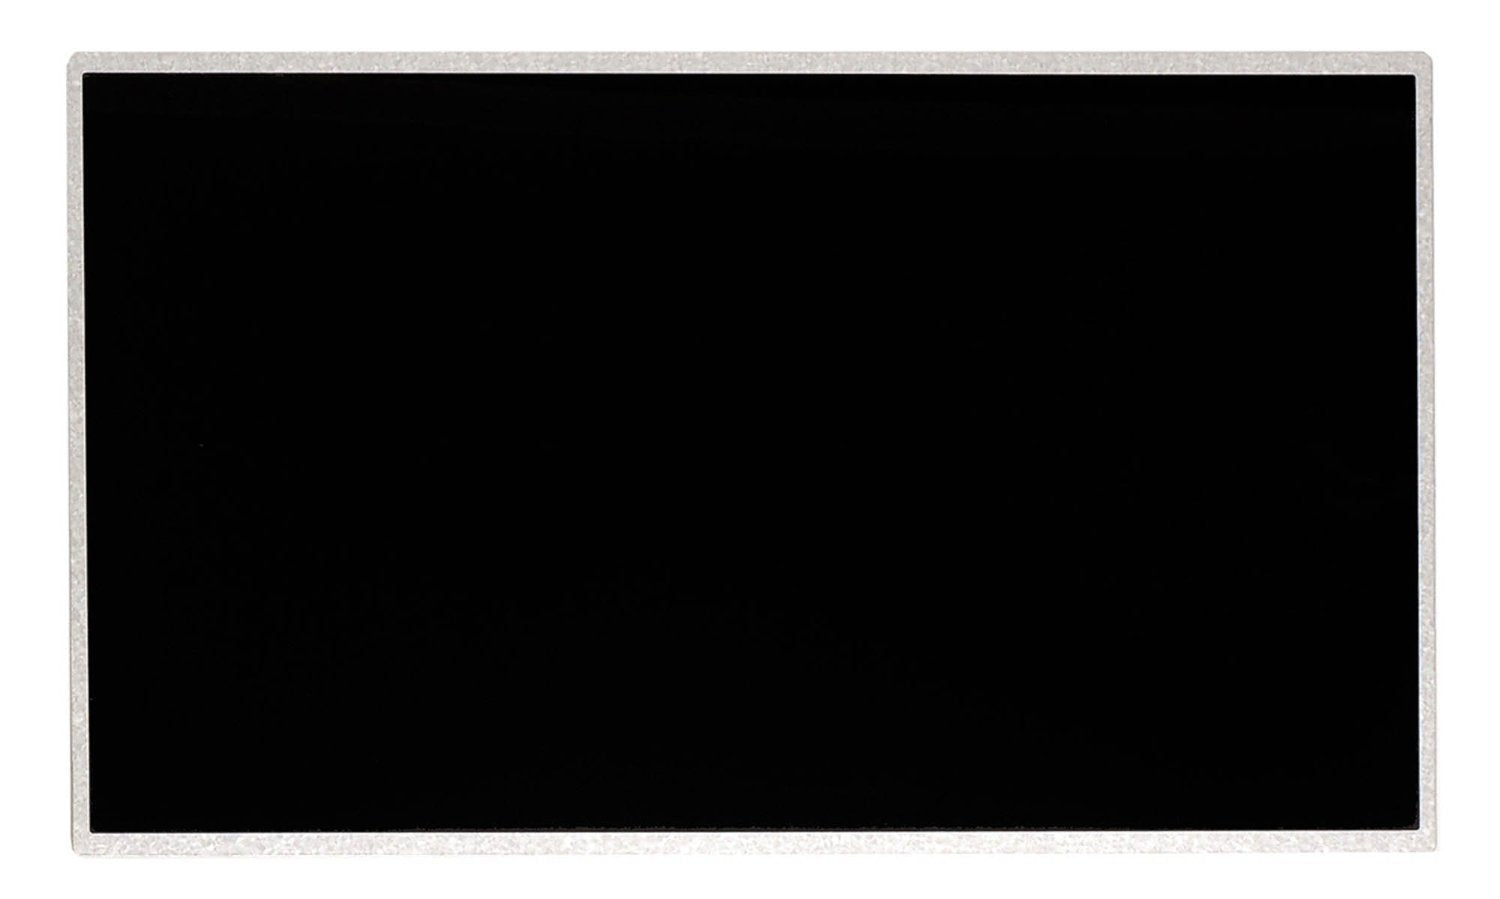 Toshiba SATELLITE L755D-S5164 Laptop Screen 15.6 LED BOTTOM LEFT WXGA HD